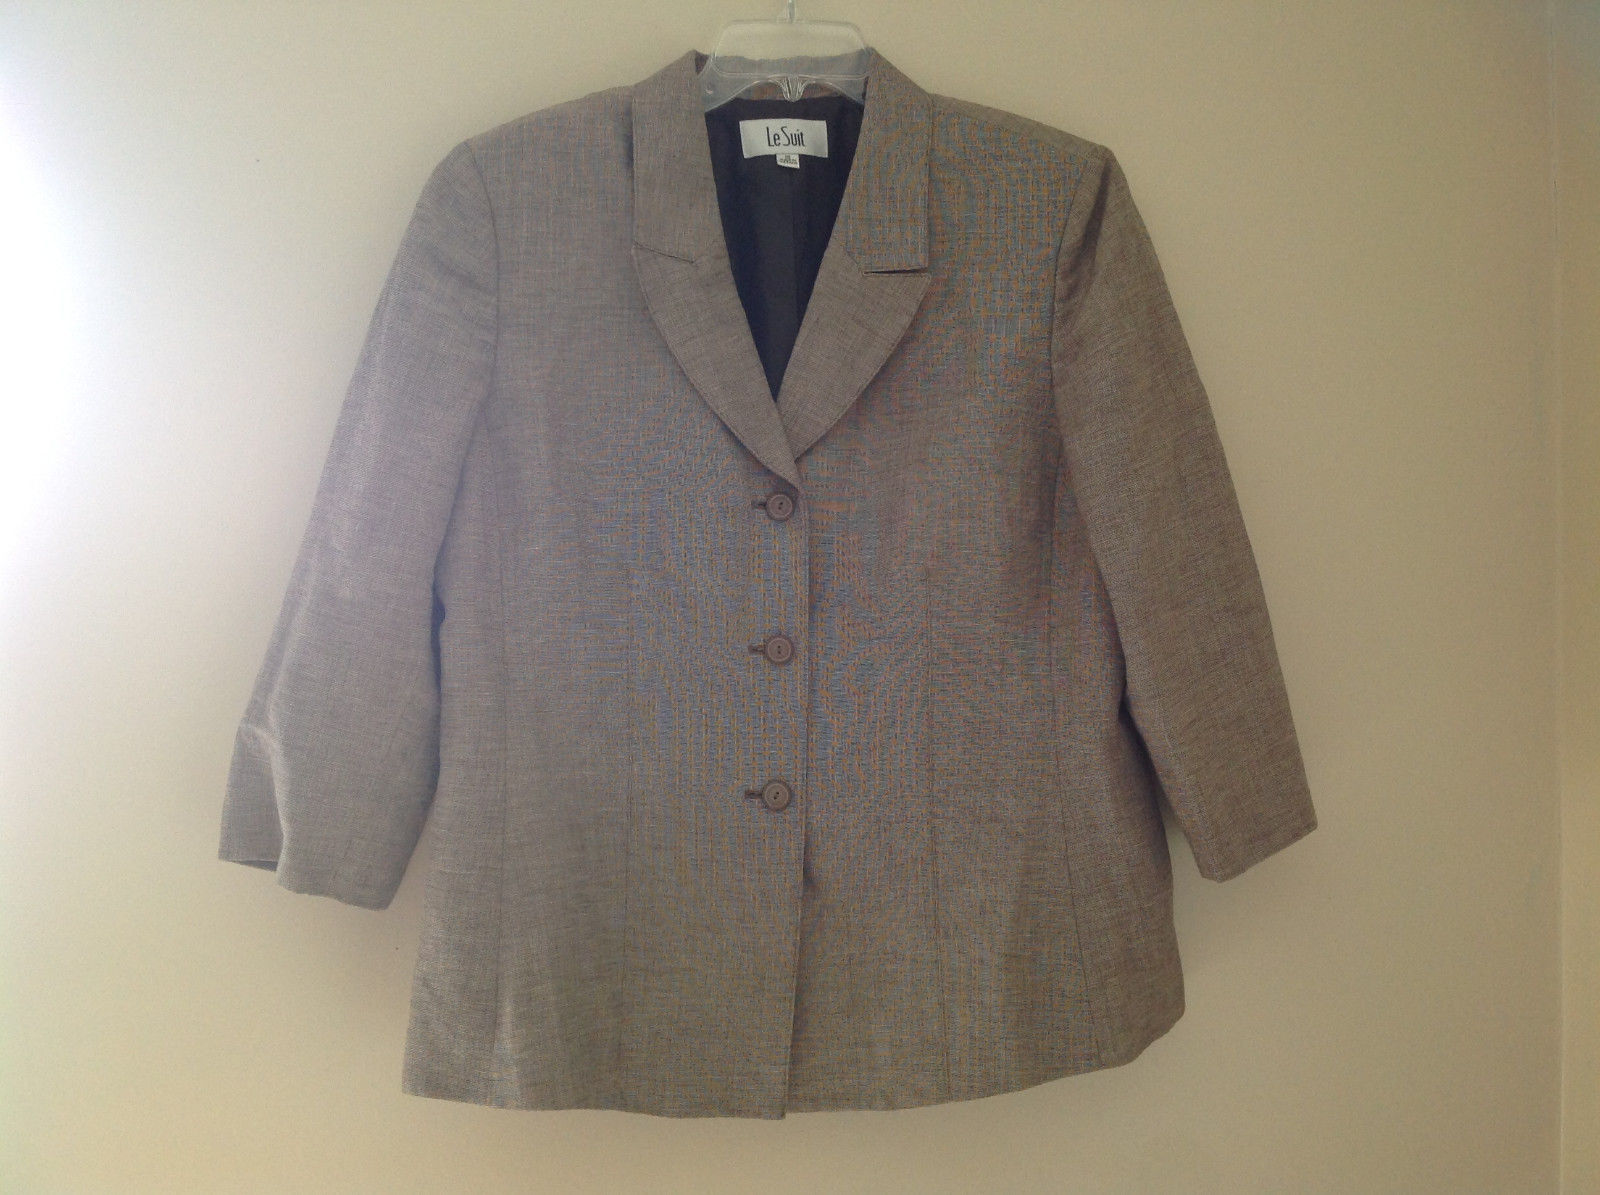 Light Brown Patterned Blazer Three Quarter Length Sleeves by Le Suit Size 16